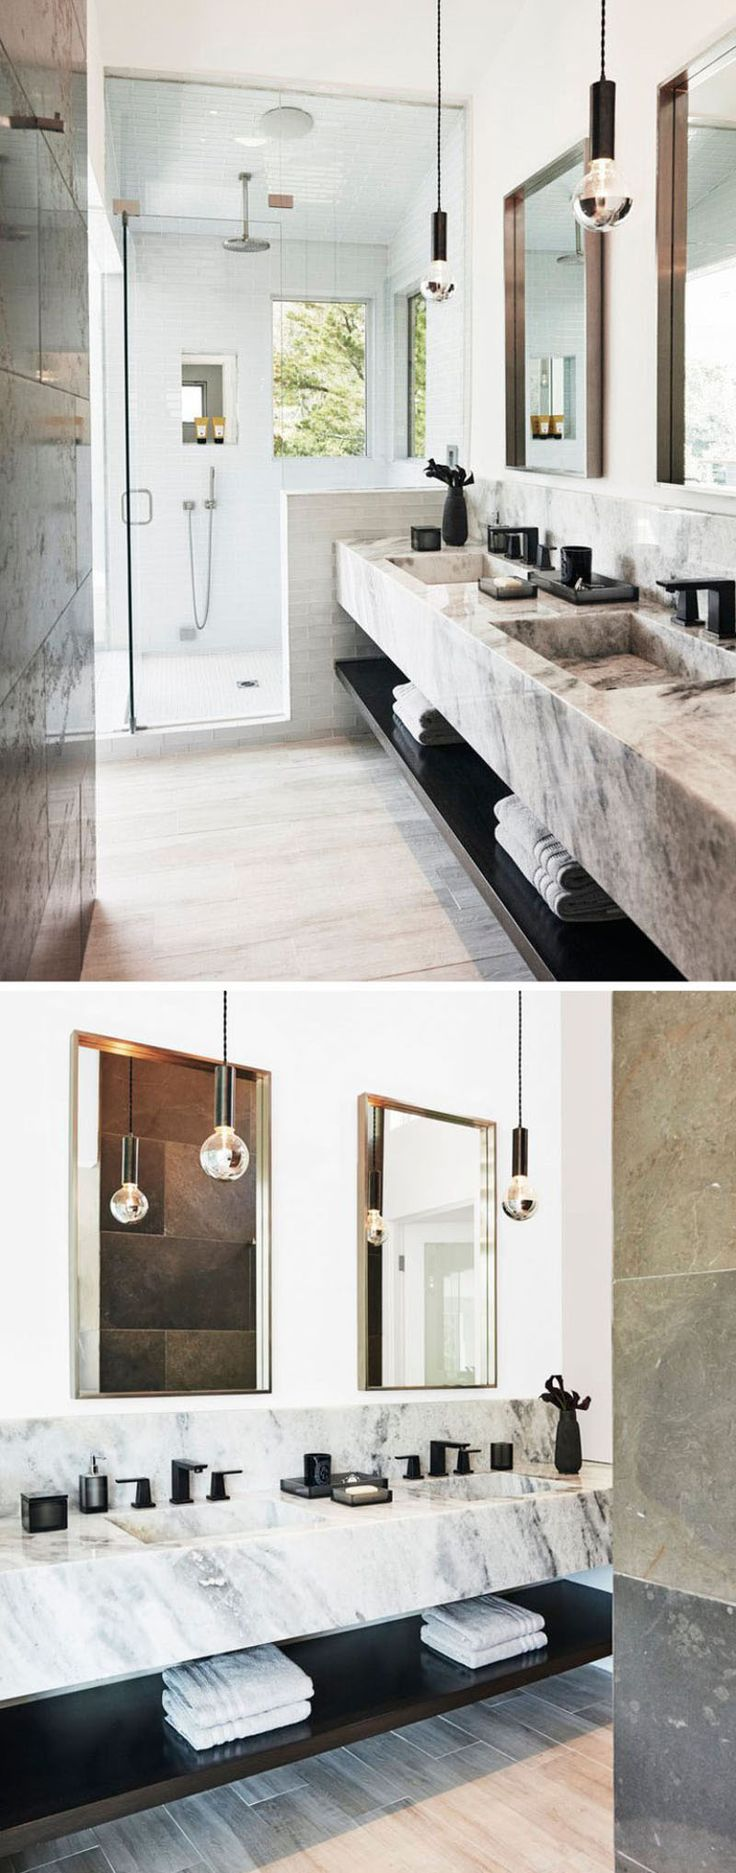 Bathroom Design Idea - An Open Shelf Below The Countertop (17 Pictures)   The dark shelf under this stone counter contrast the light materials in the bathroom and tie in the black hardware and accessories.